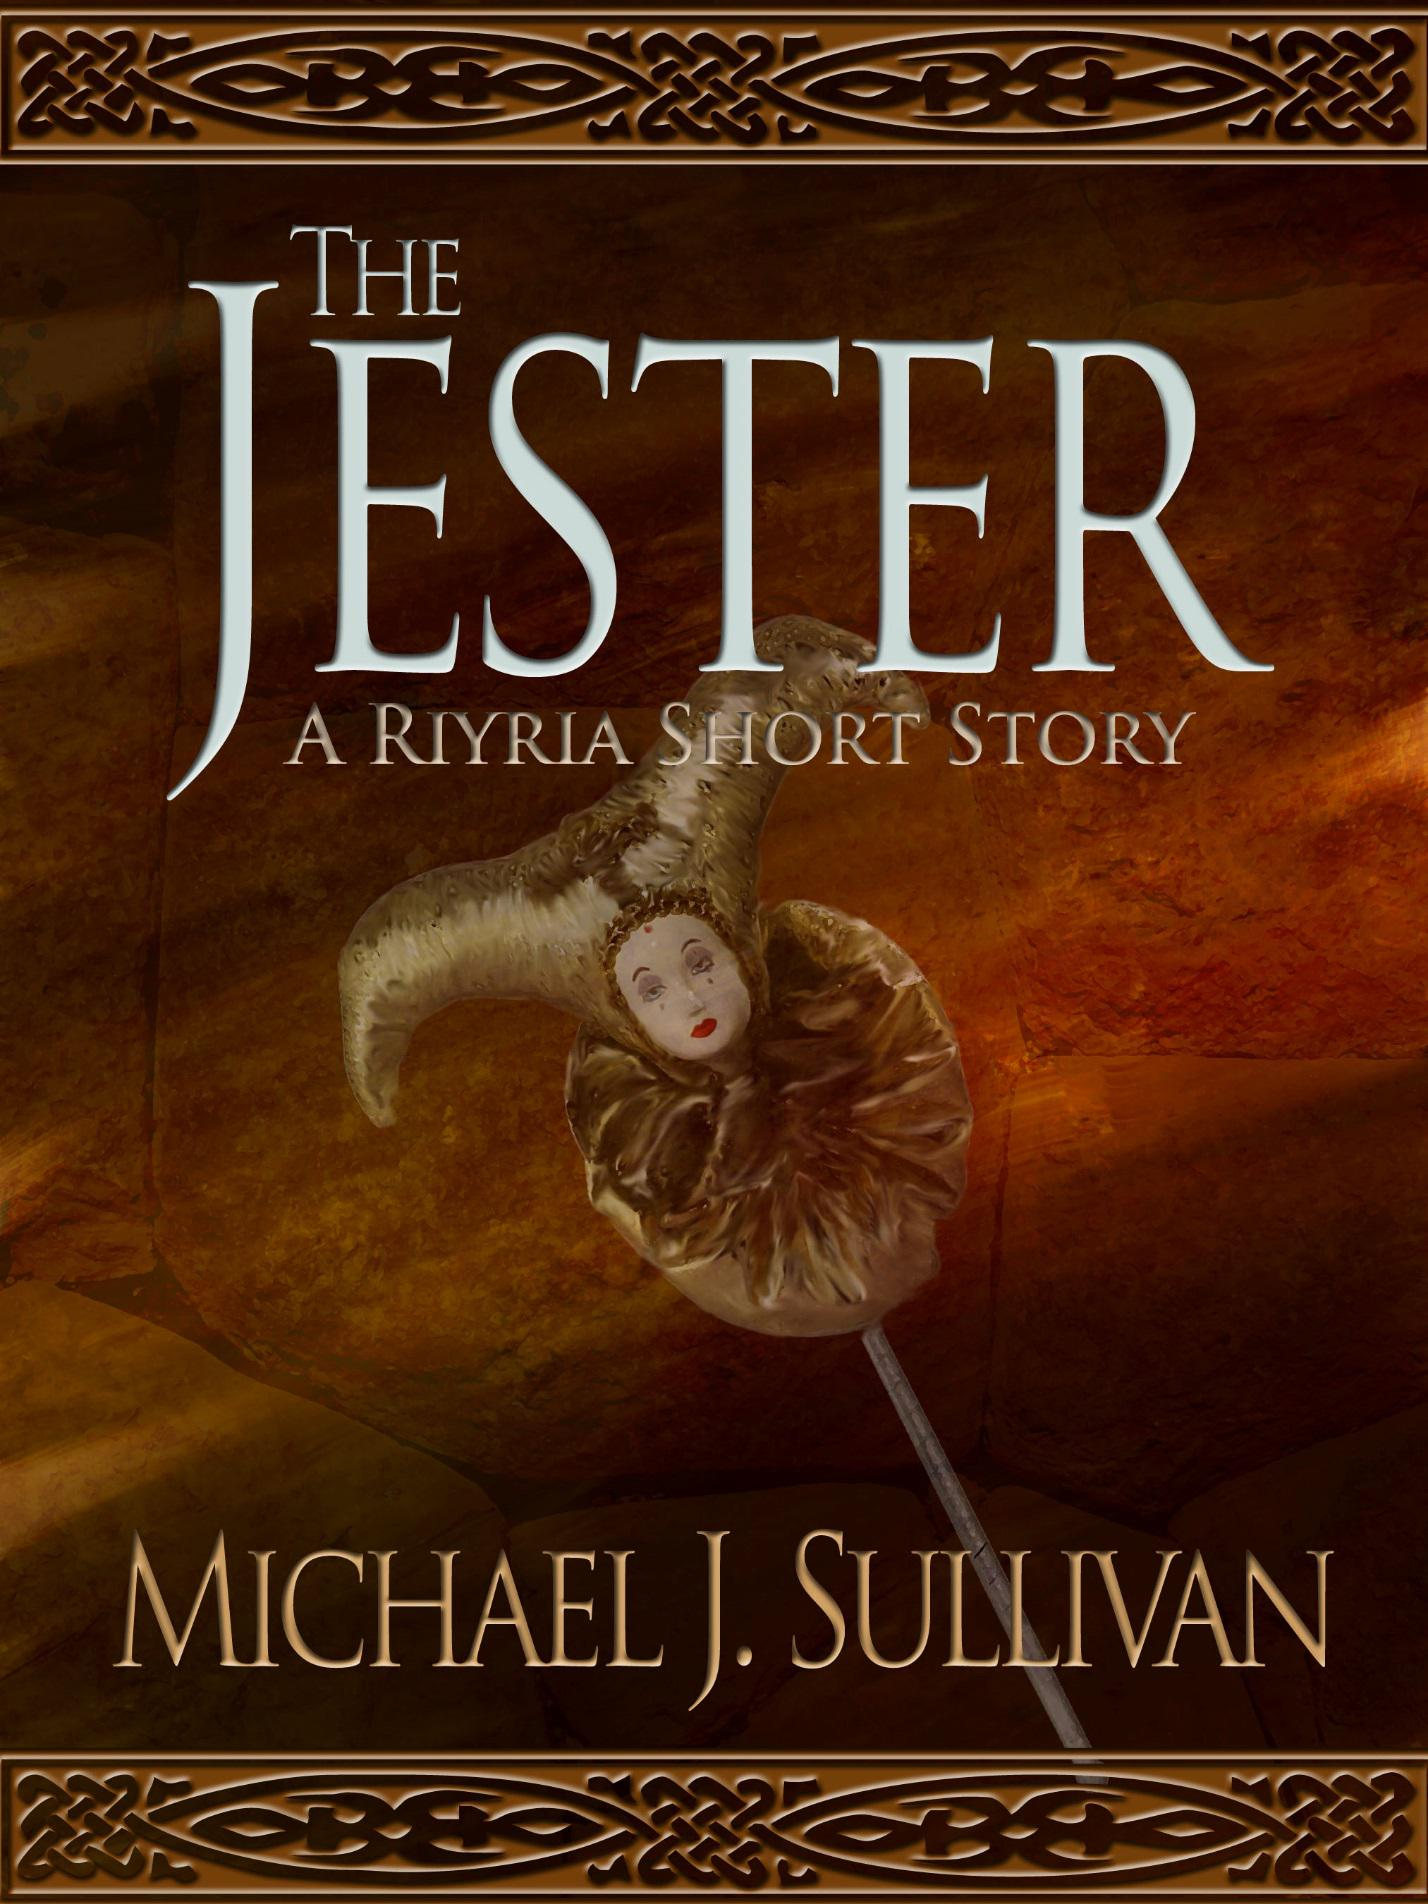 The Jester by Michael J. Sullivan